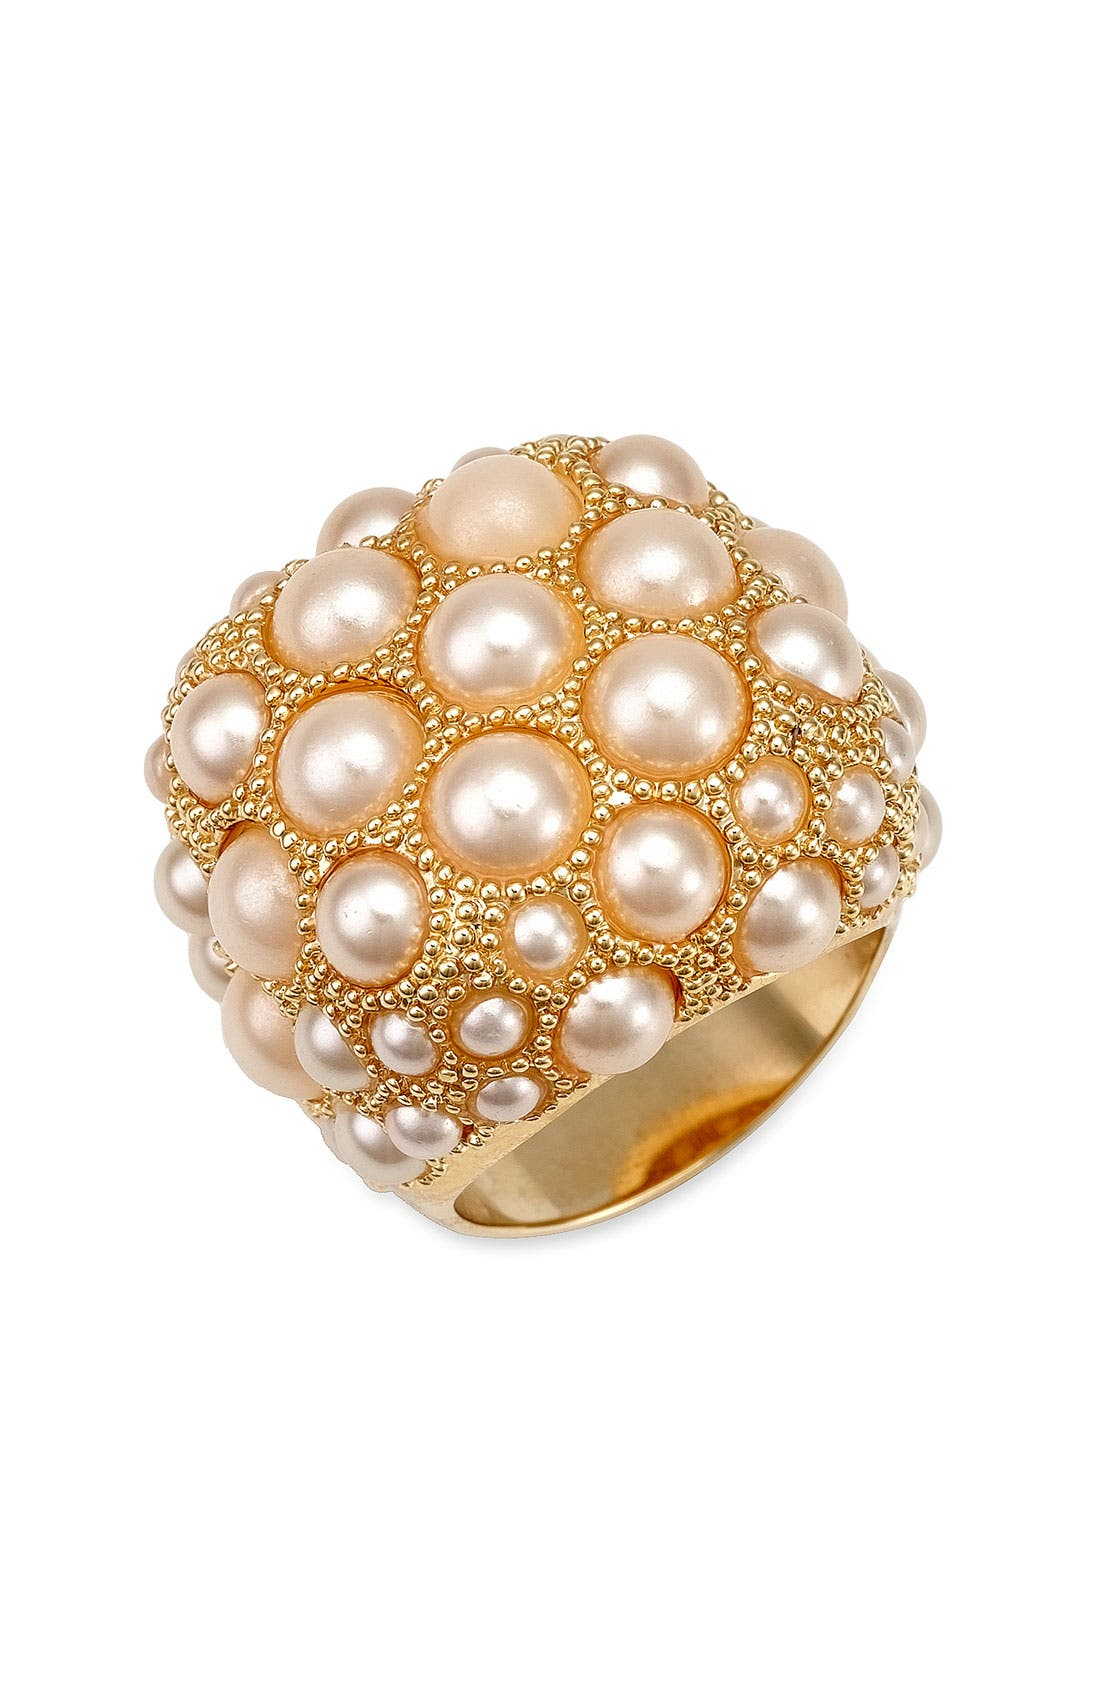 Main Image - Ariella Collection Faux Pearl Dome Adjustable Ring